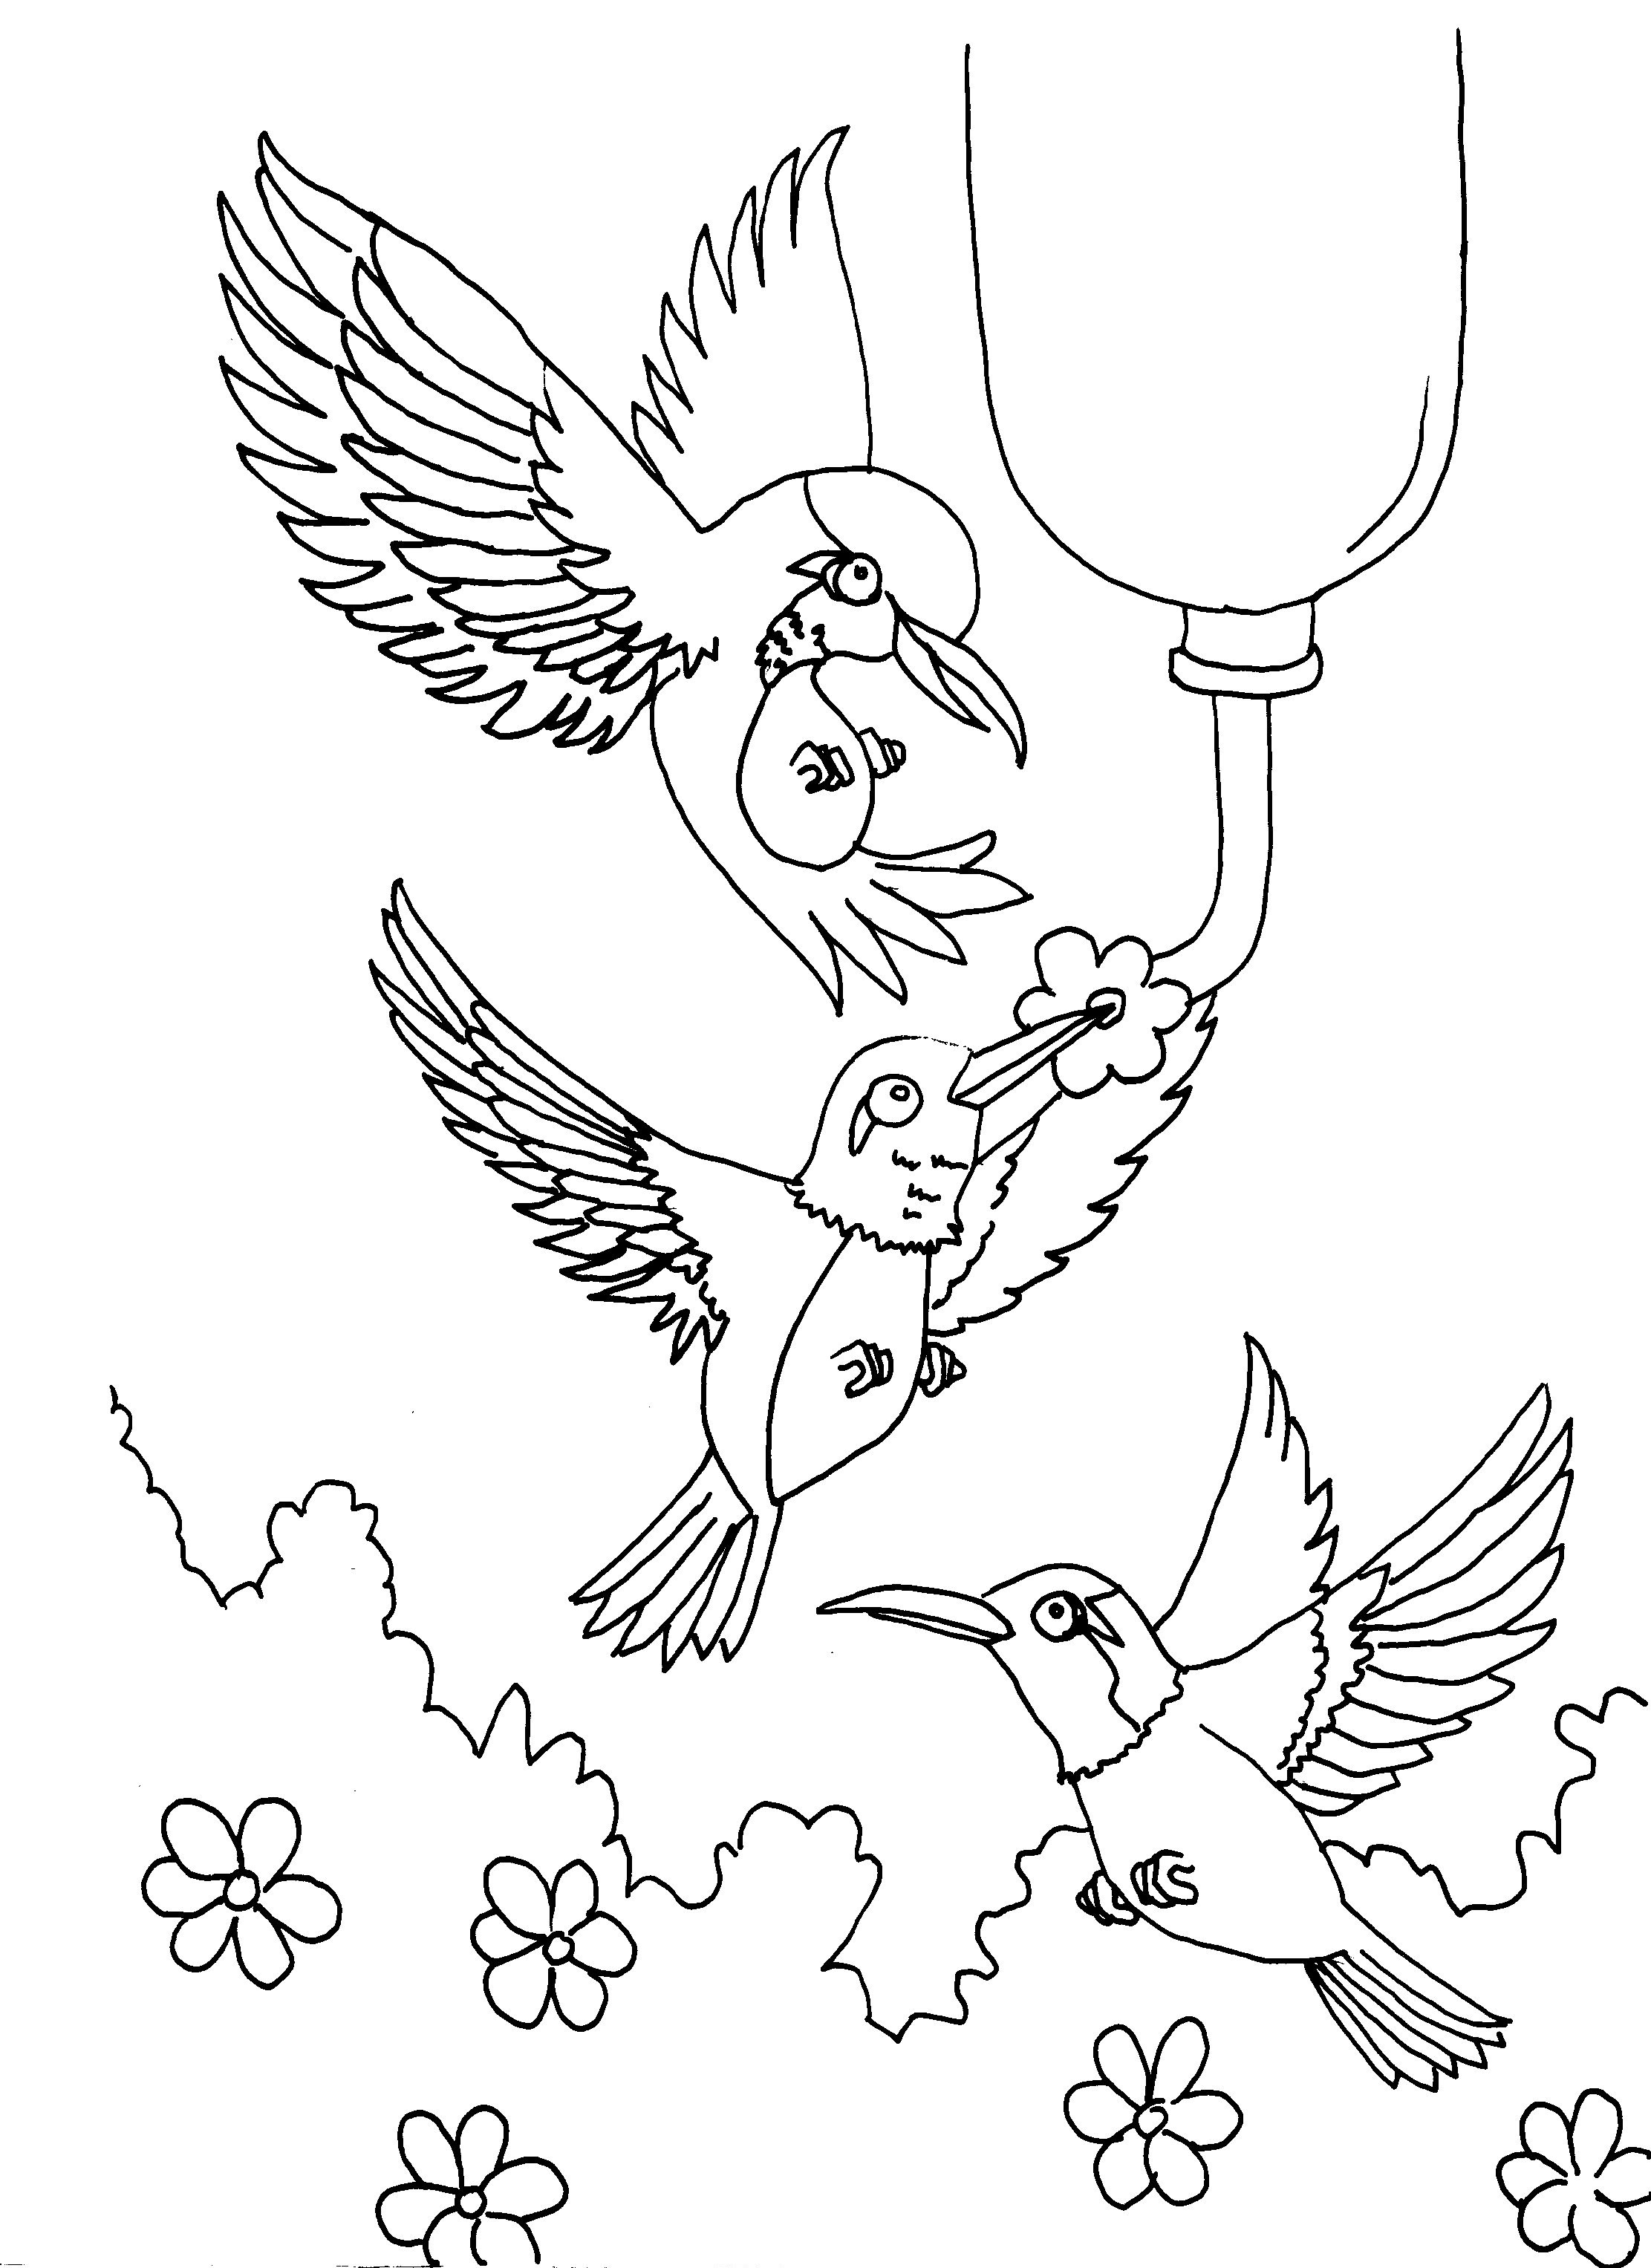 free printable hummingbird coloring pages small coloring pages hummingbirds coloring pages printable hummingbird free coloring pages